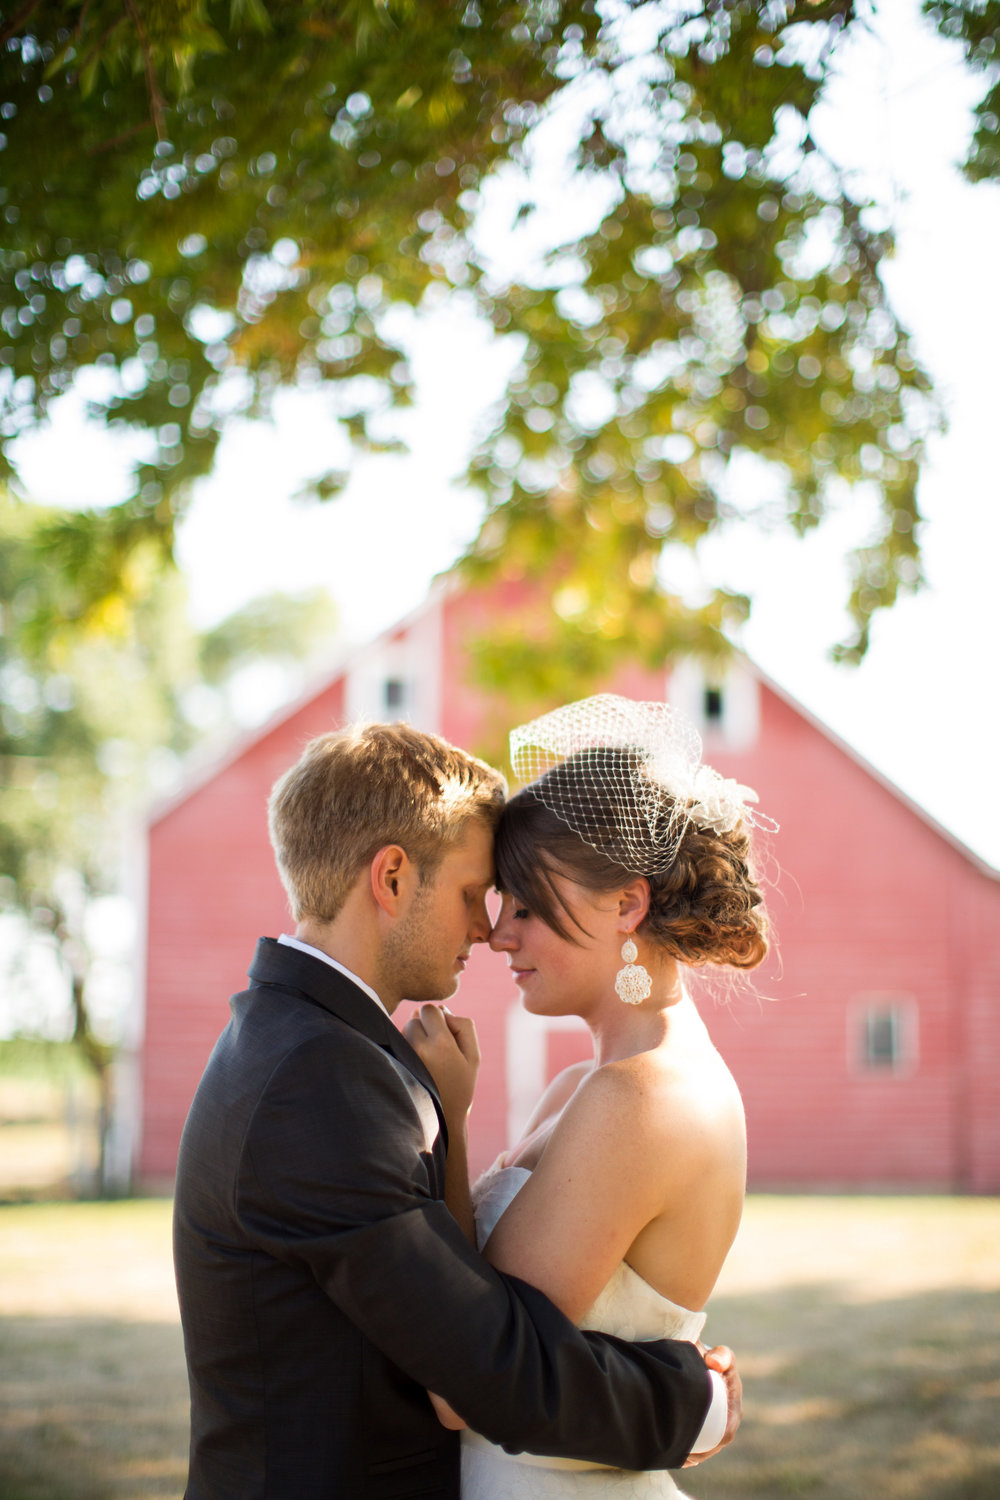 I could not have had a better wedding day! Mostly Becky Weddings & Events went above and beyond to make our day extra special and stress free! What HUGE blessing! 5 star recommendation!!!- RachelIowa 2013 - Planned by Becky